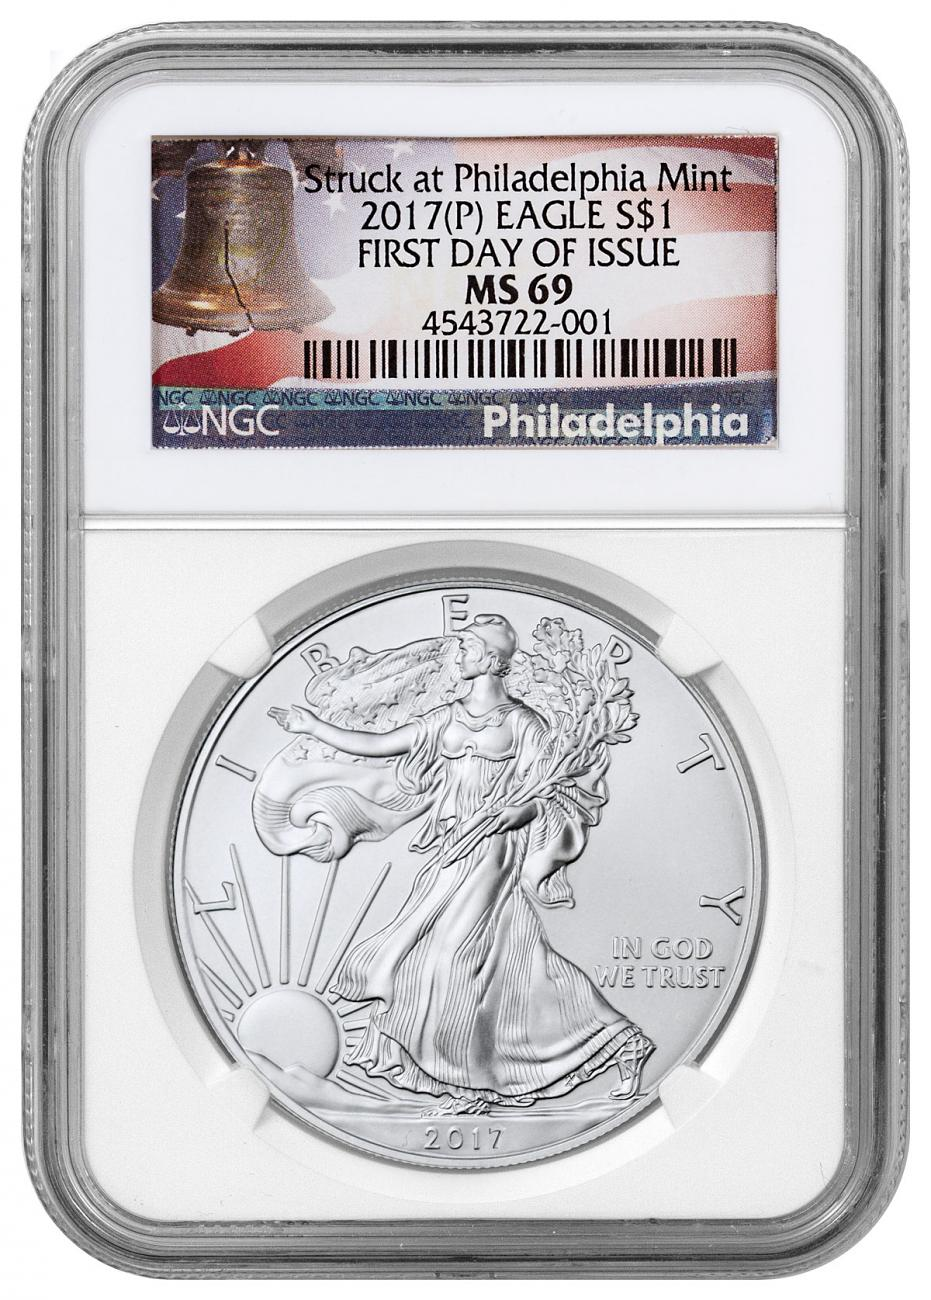 2017-(P) Silver Eagle Struck at Philadelphia NGC MS69 FDI Liberty Bell Label